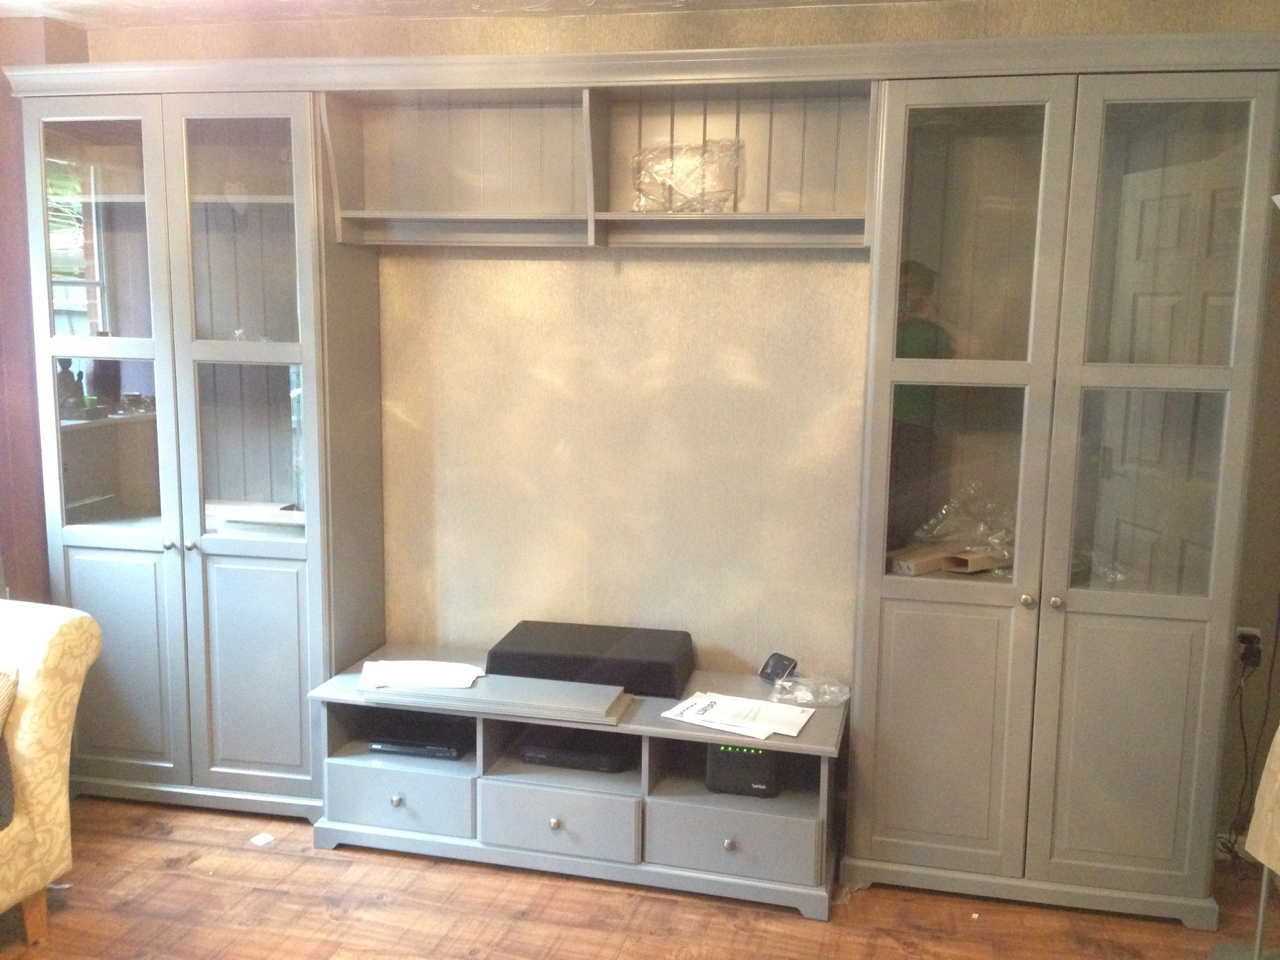 Ikea Liatorp display cabinets and TV storage combination assembled by www.norwichflatpack.co.uk